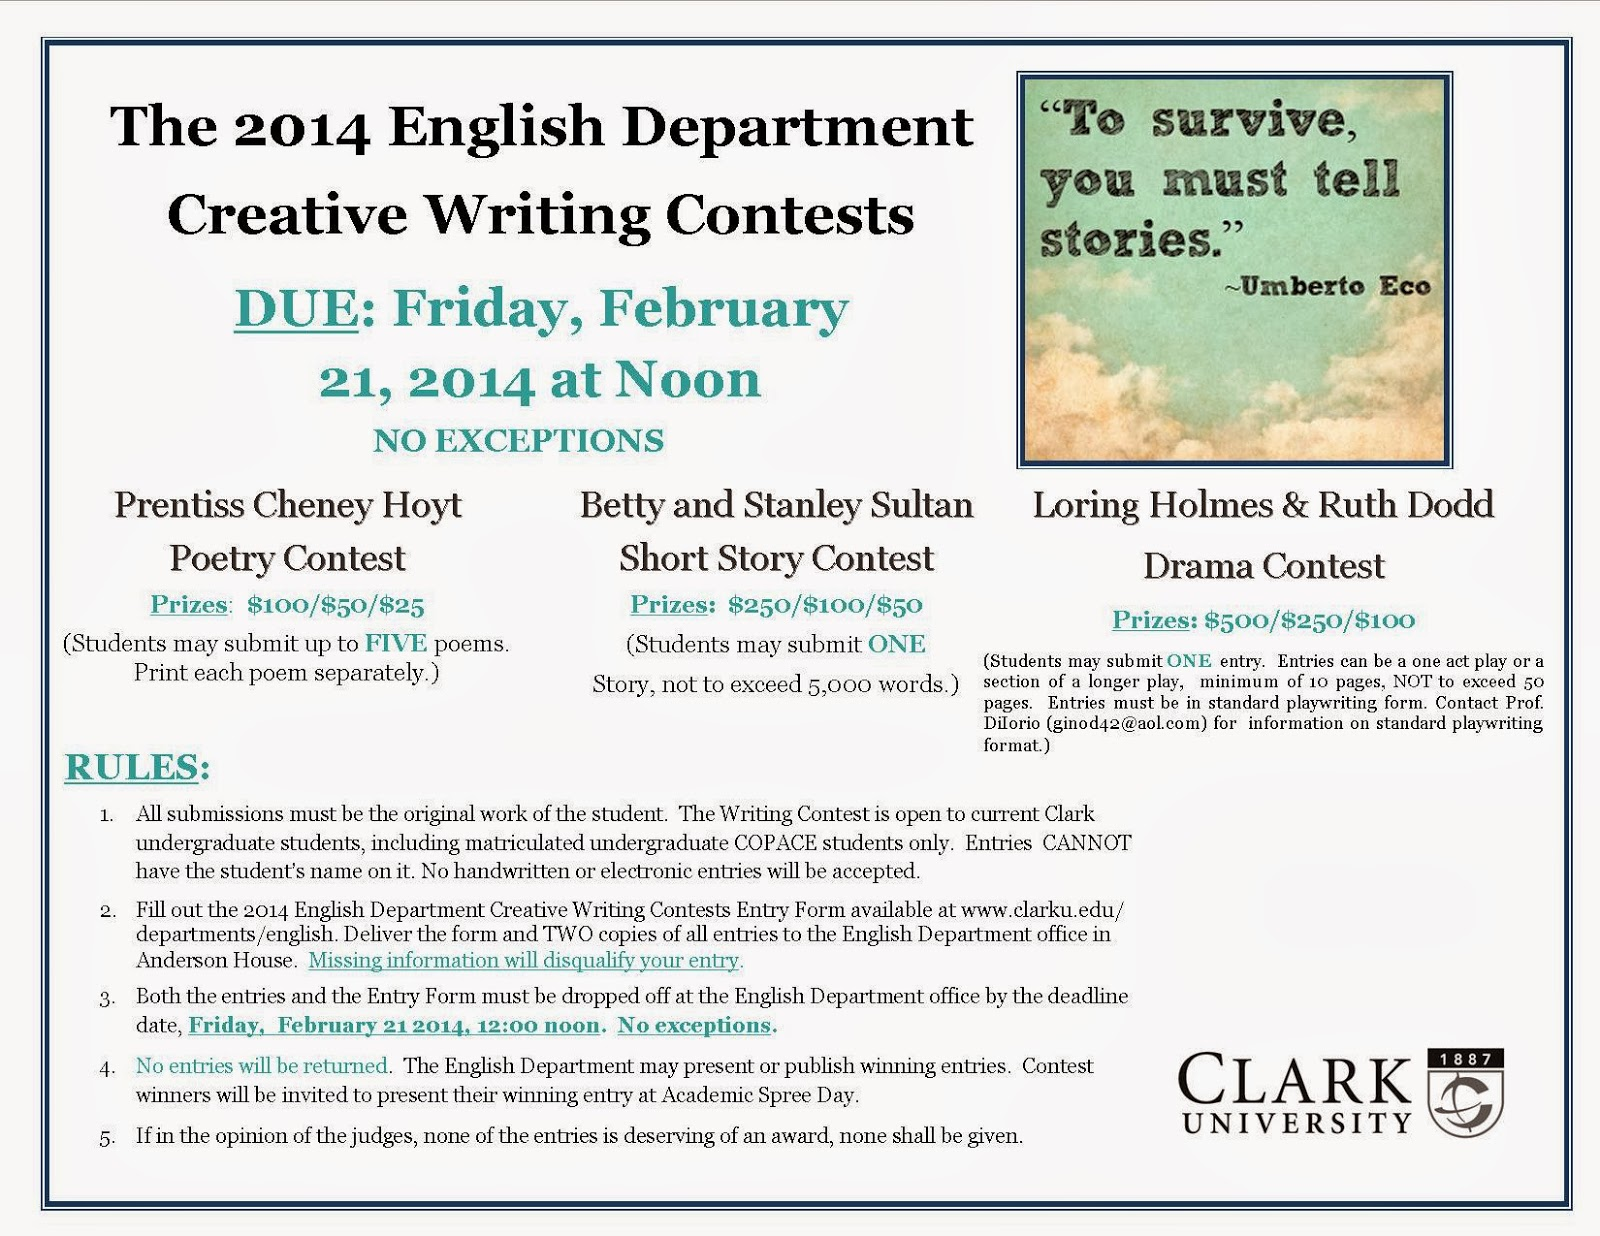 creative essay contests Your ultimate guide to the best writing contests happening right now if you're looking for fiction, poetry, essay, or genre contests, you'll find it here.